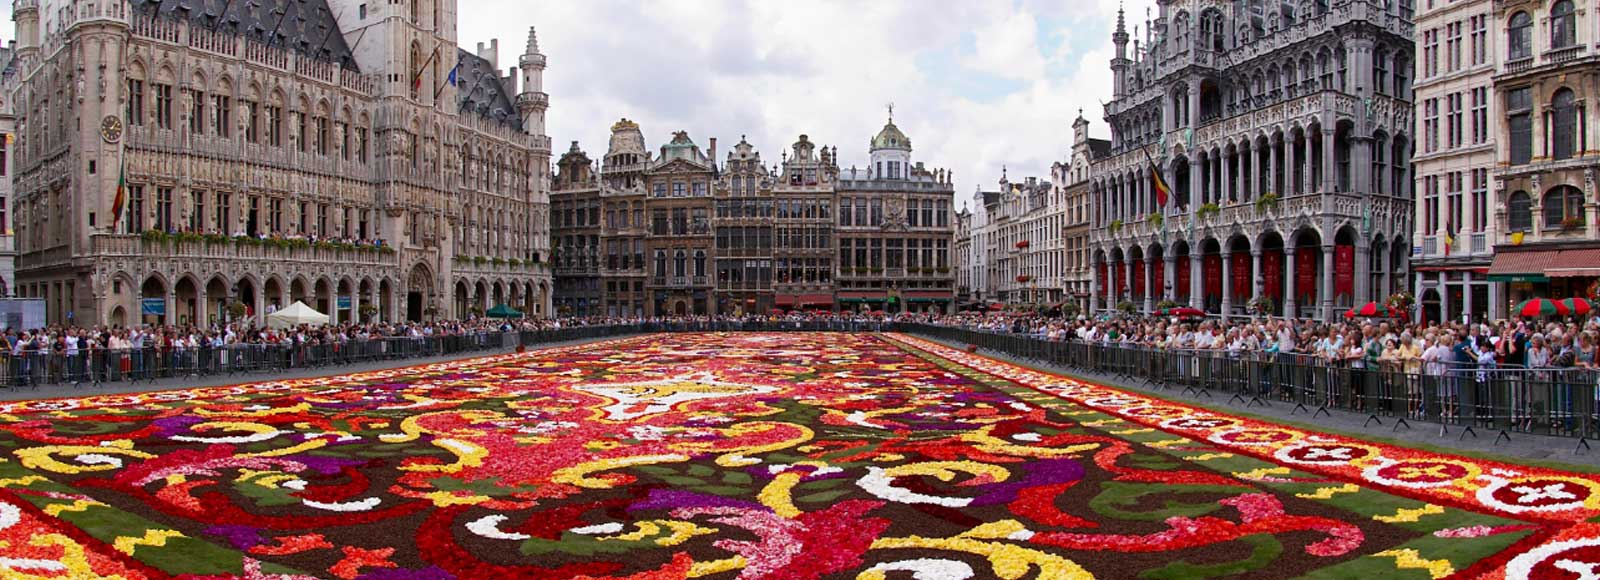 Cheap Flight Fares to Brussels. Flight Tickets Discounts to Brussels